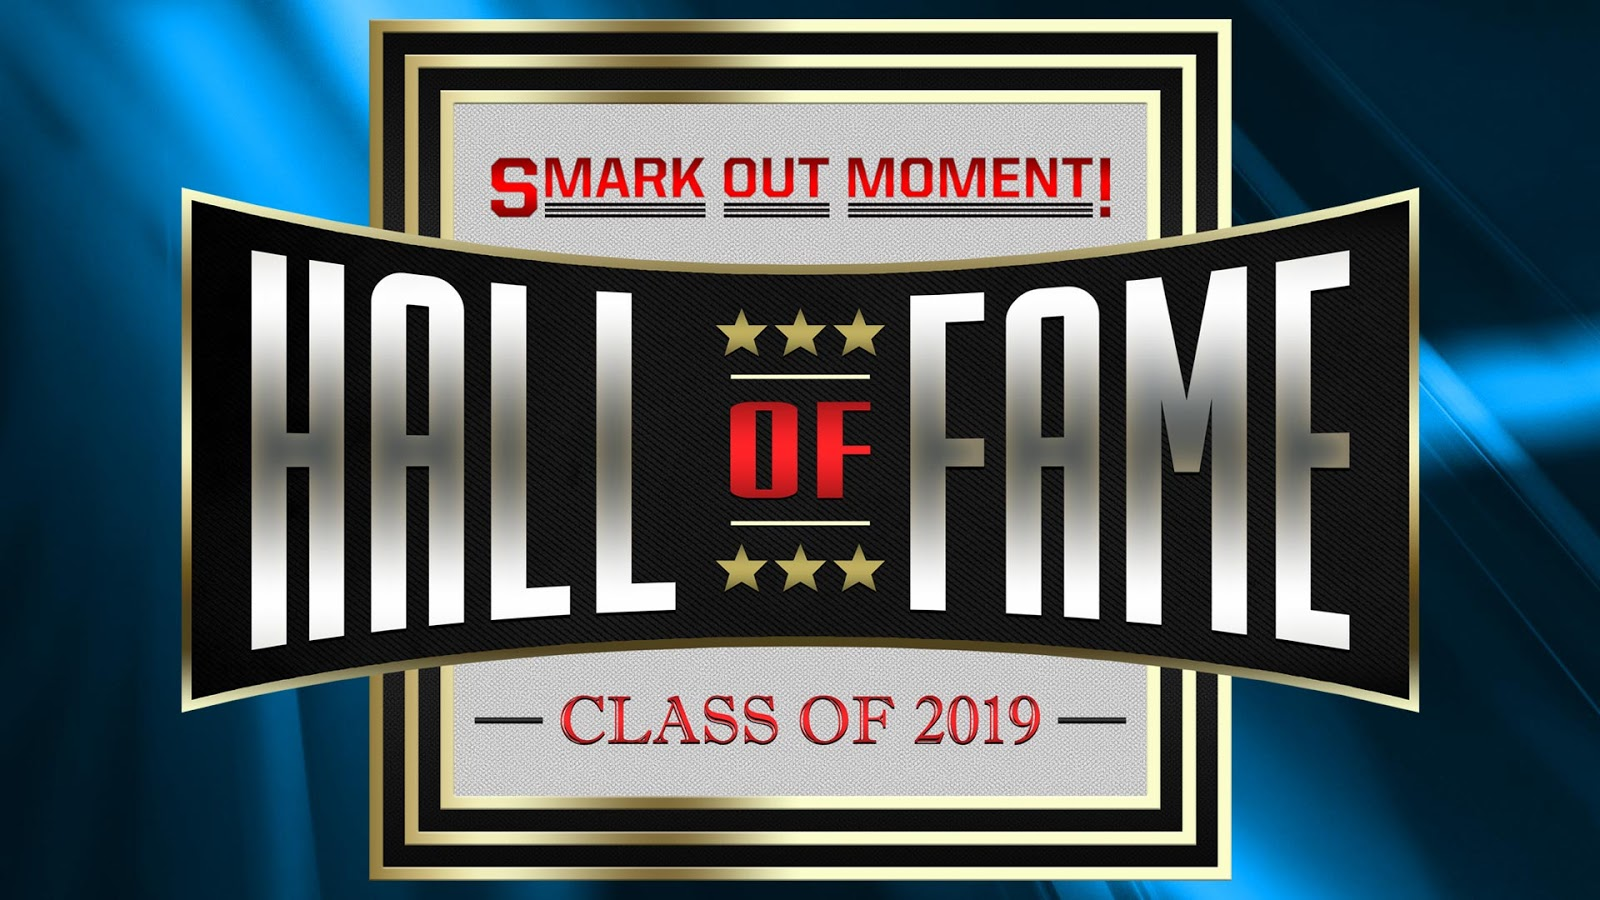 Smack Talk Hall of Fame class of 2019